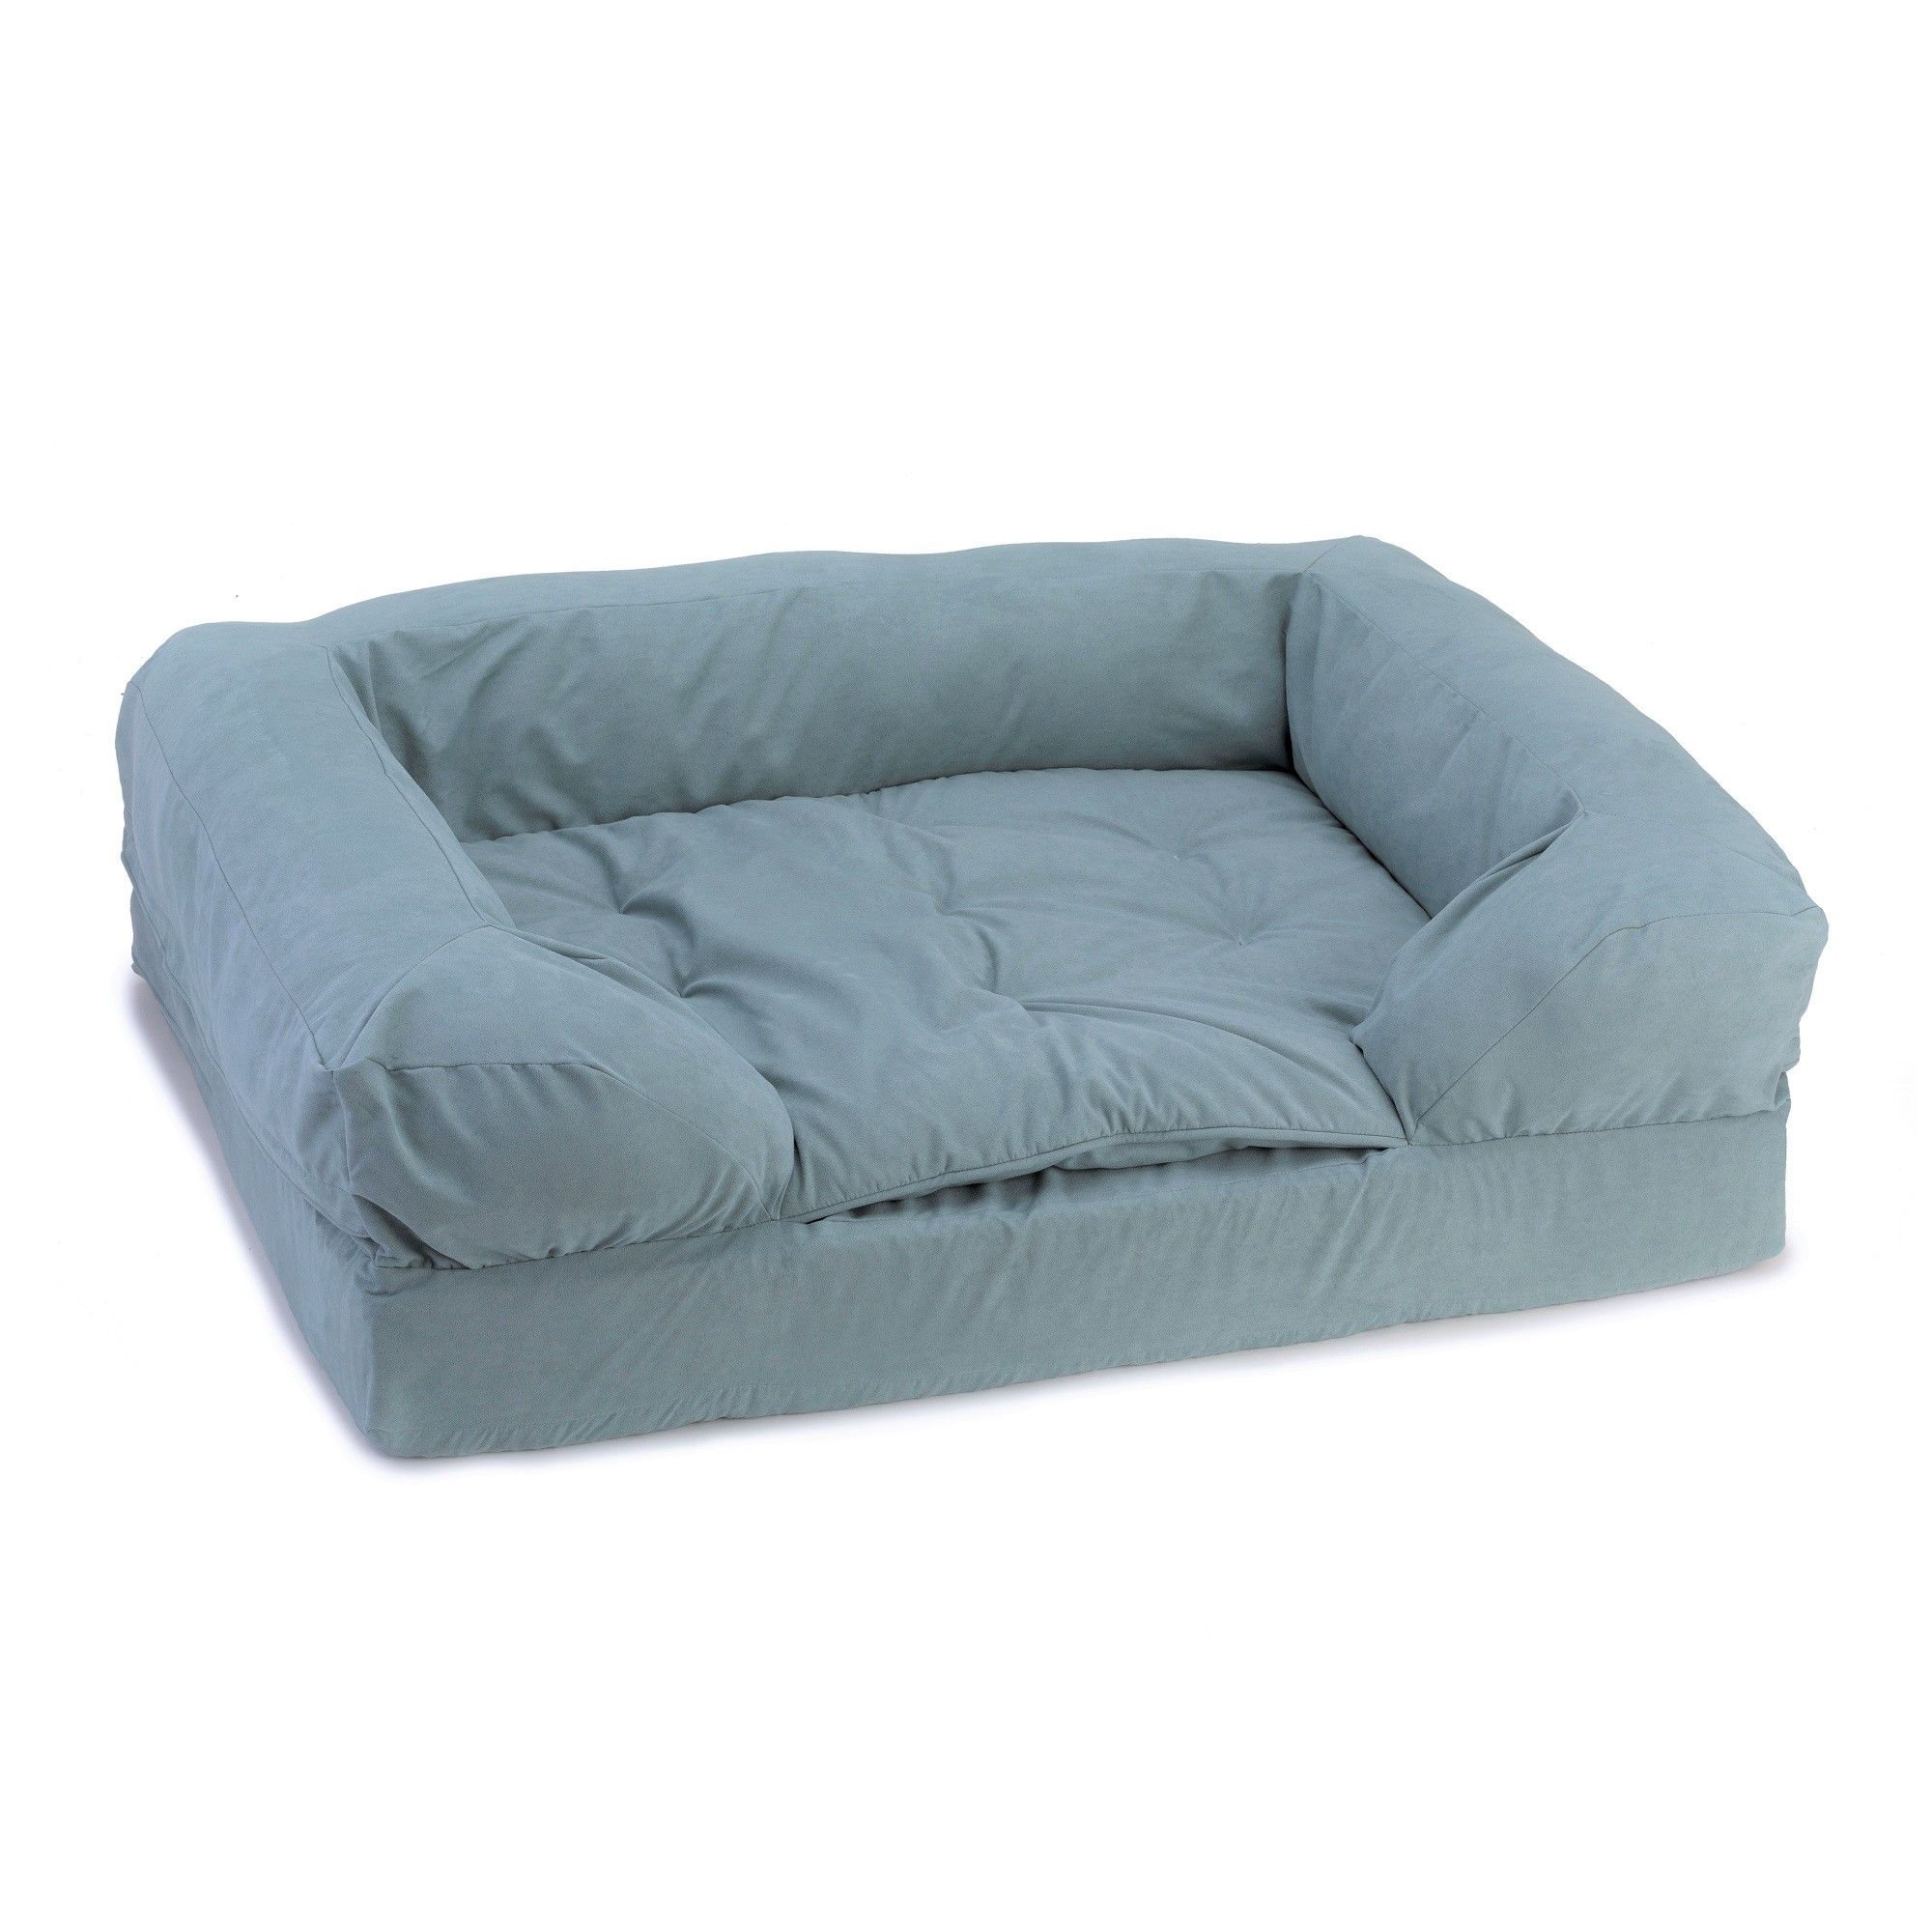 Snoozer 69752 Luxury Pet Dog Sofa Medium